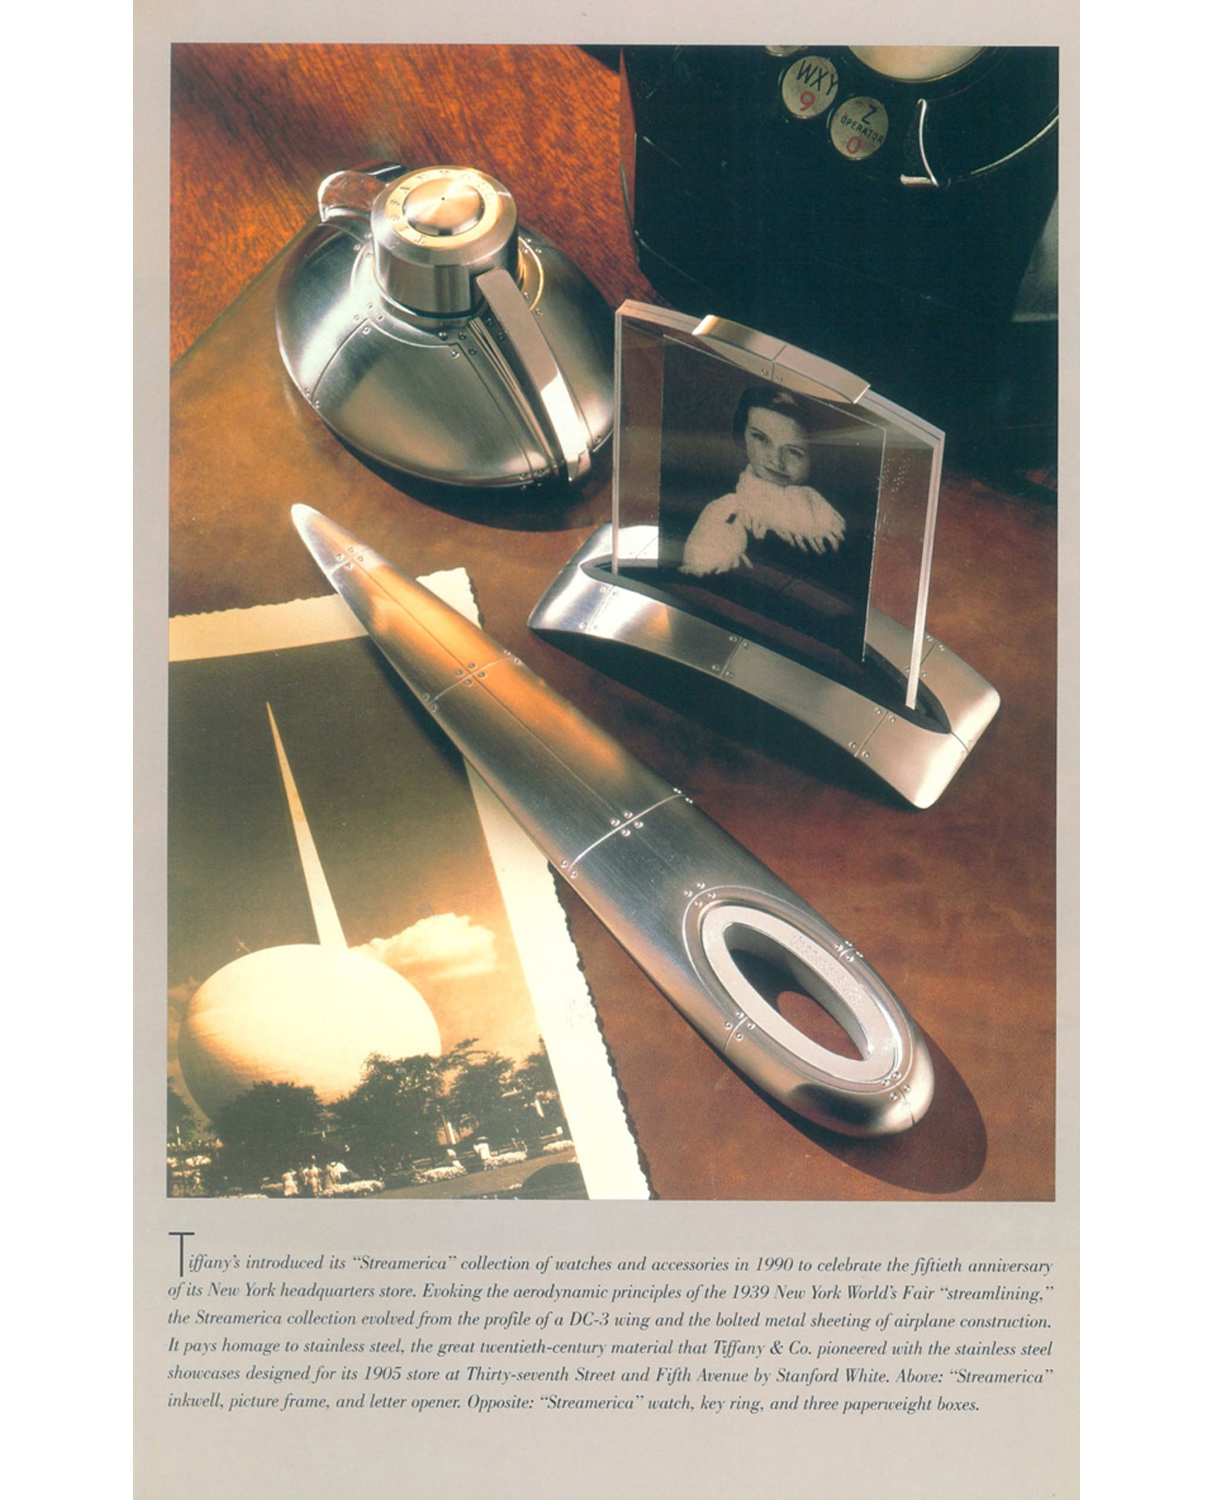 Tiffany & Co. Streamerica Stainless Steel Collection Book Excerpt Loring 20th Century Book